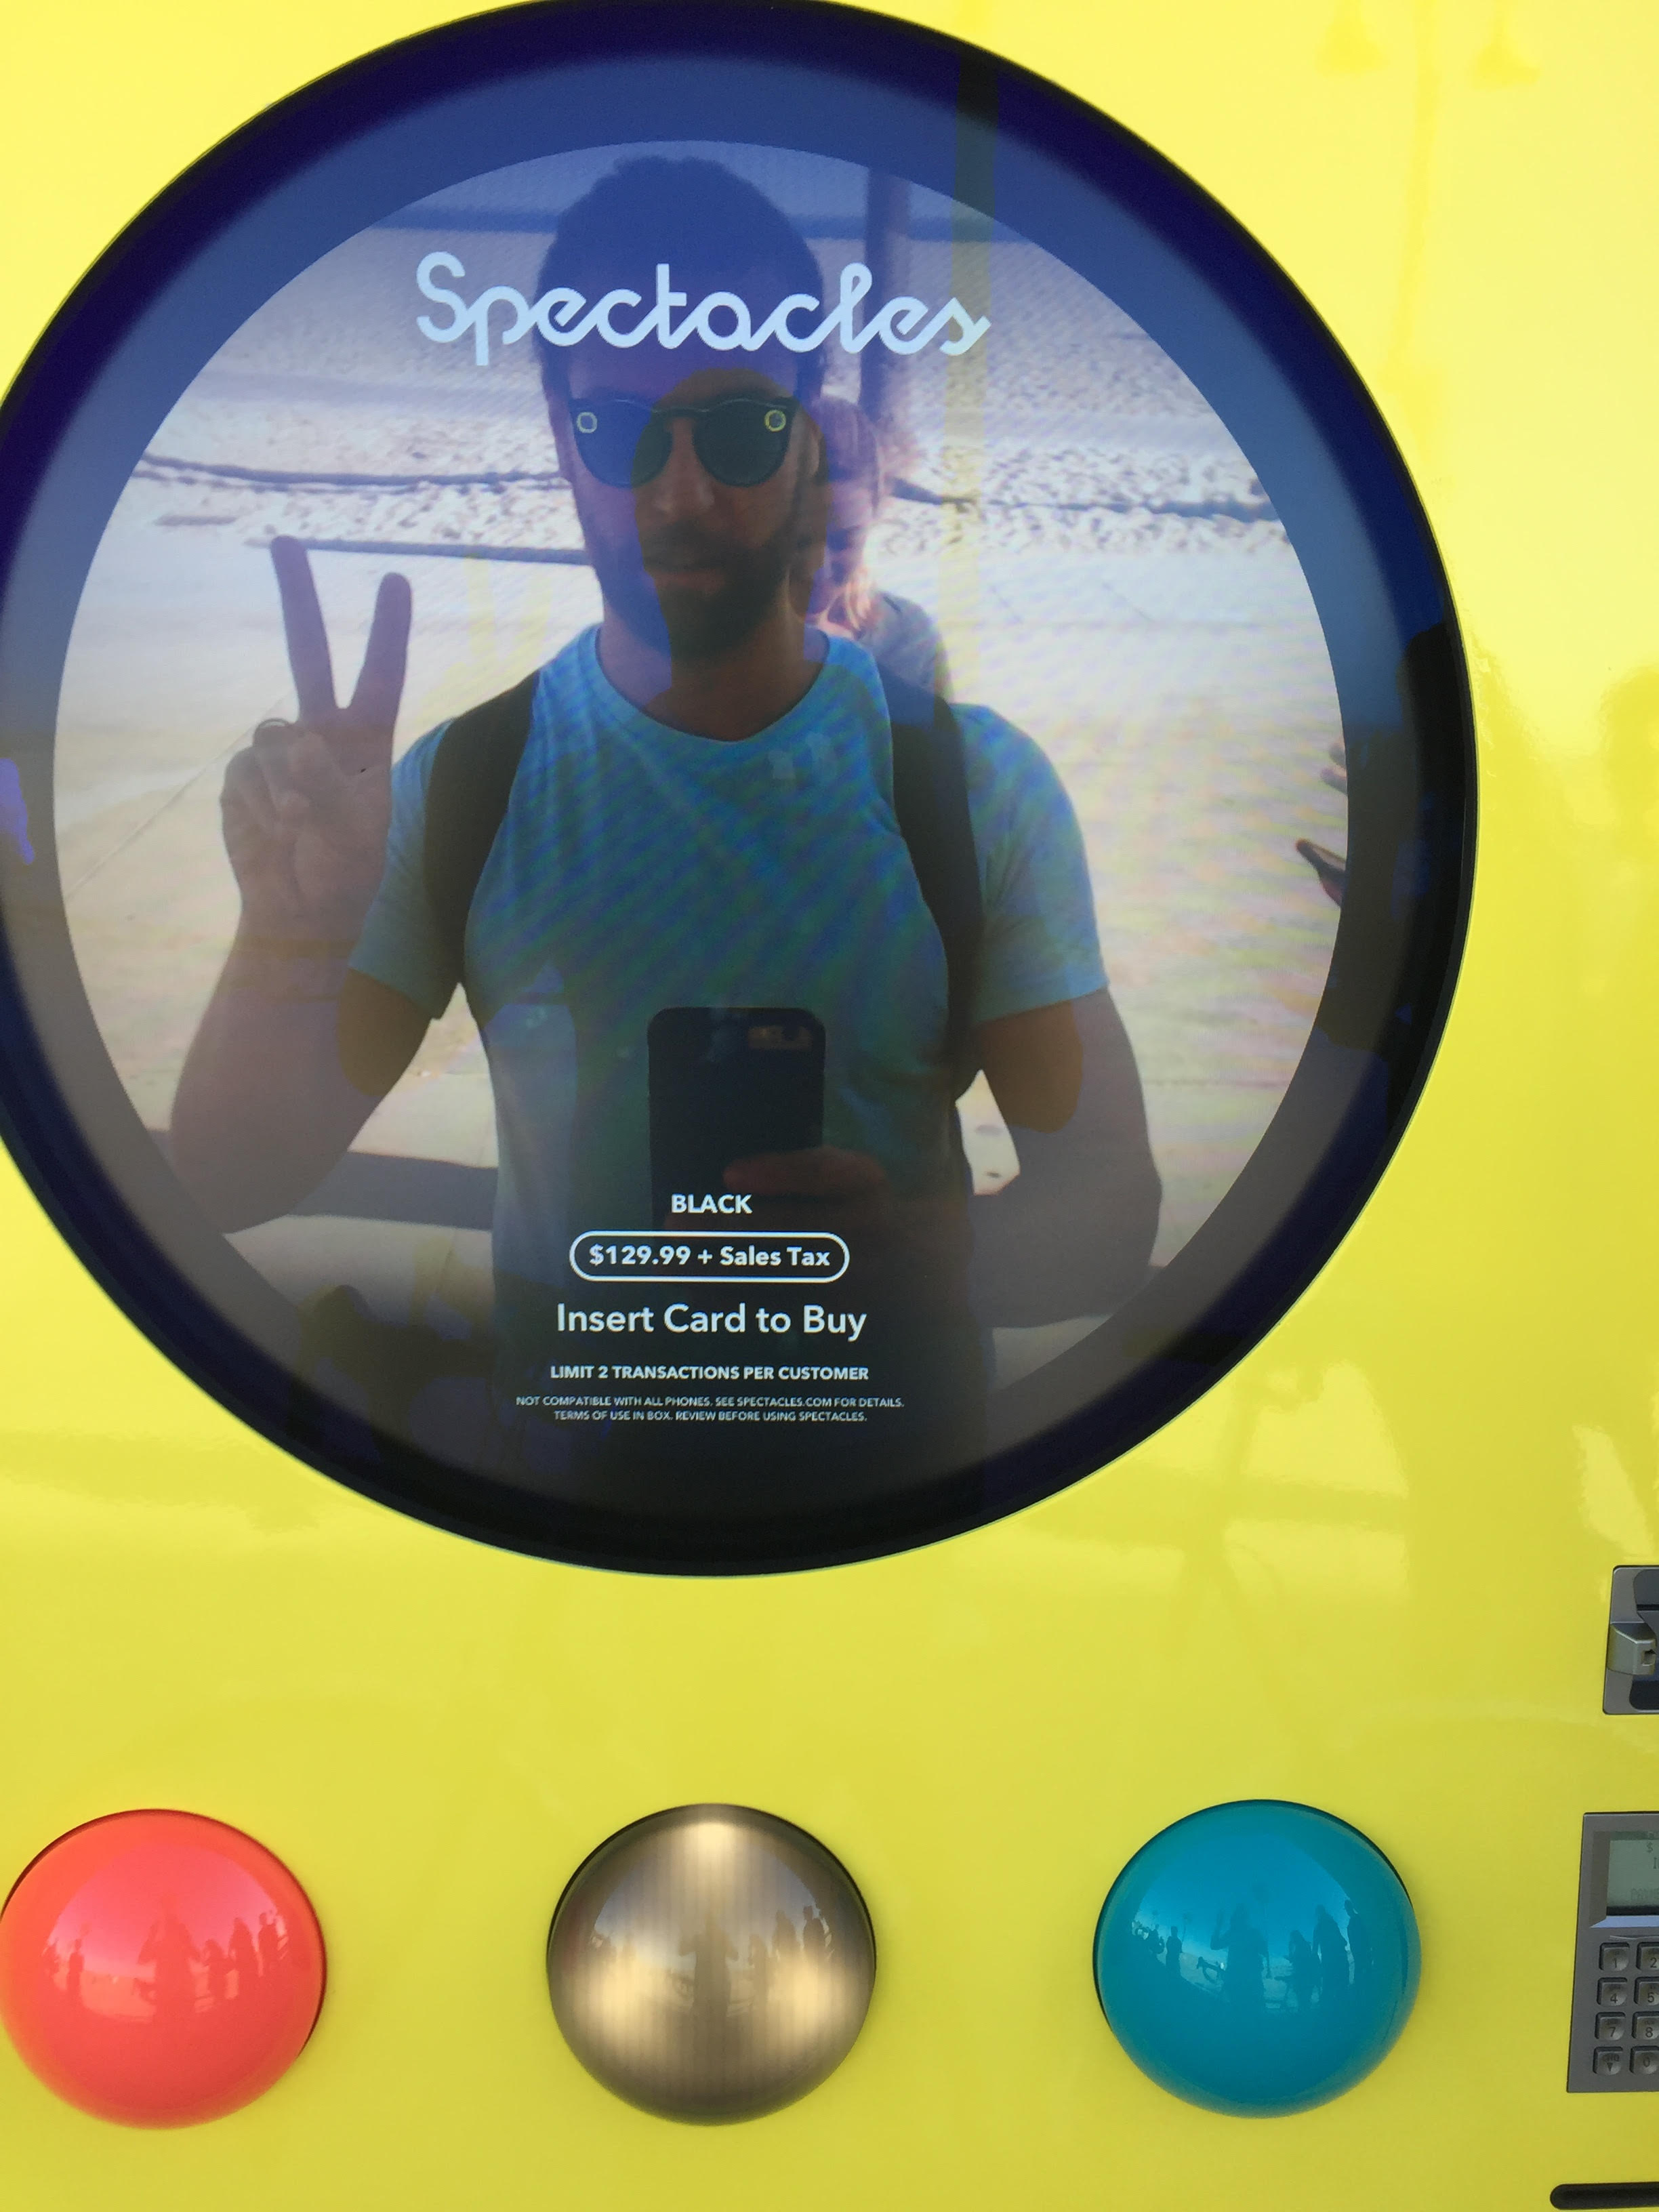 spectacles vending machine